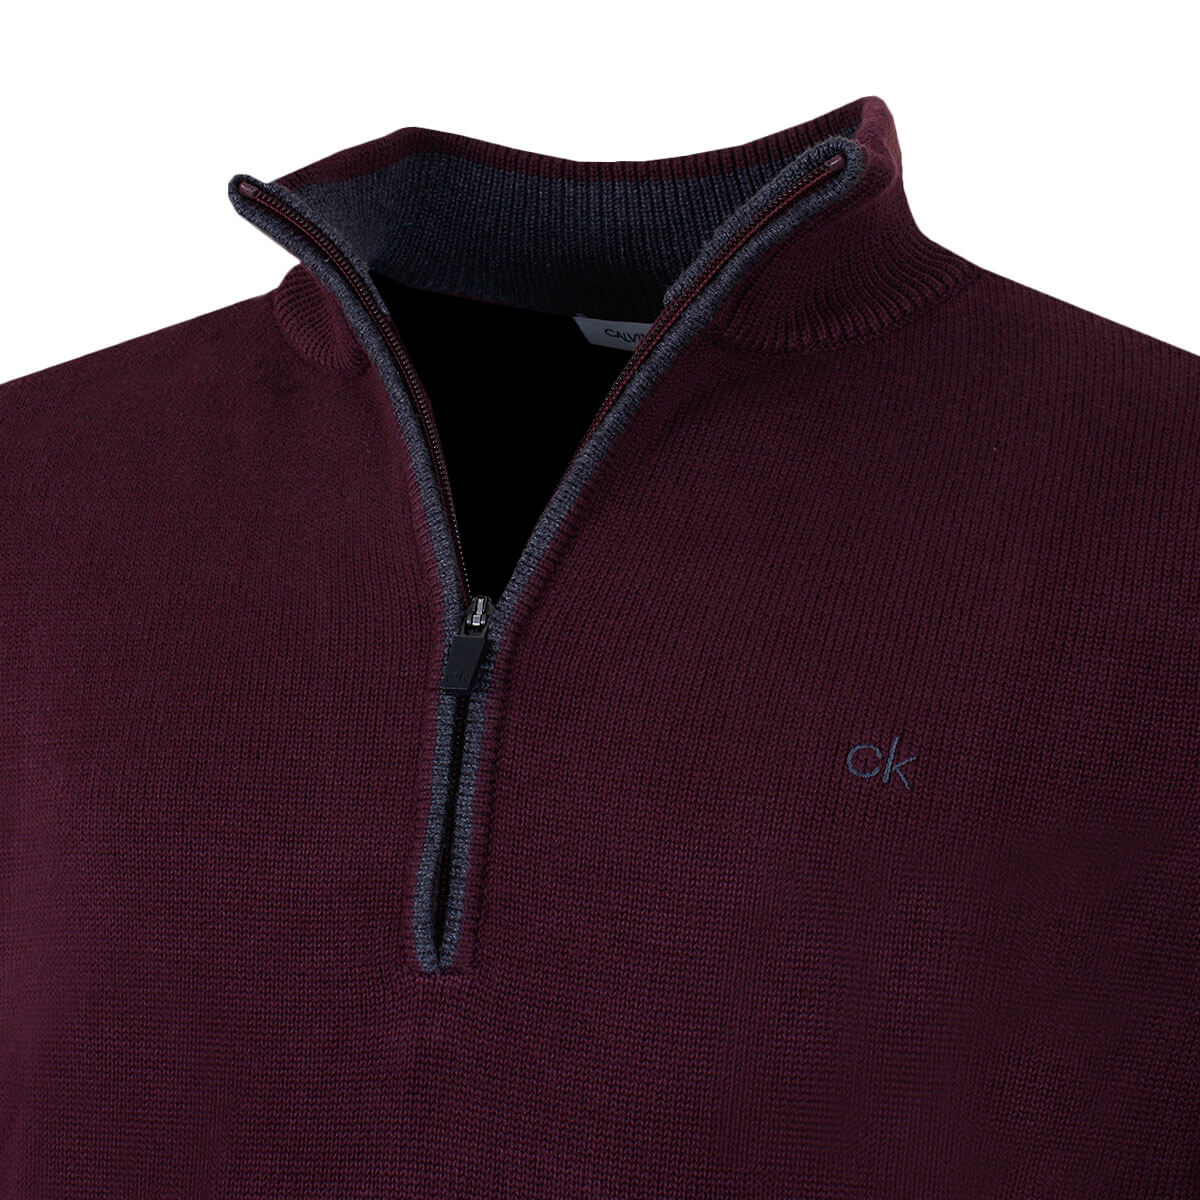 Calvin-Klein-Golf-Mens-2019-Chunky-Cotton-1-2-Zip-Golf-Top-Sweater-37-OFF-RRP thumbnail 29